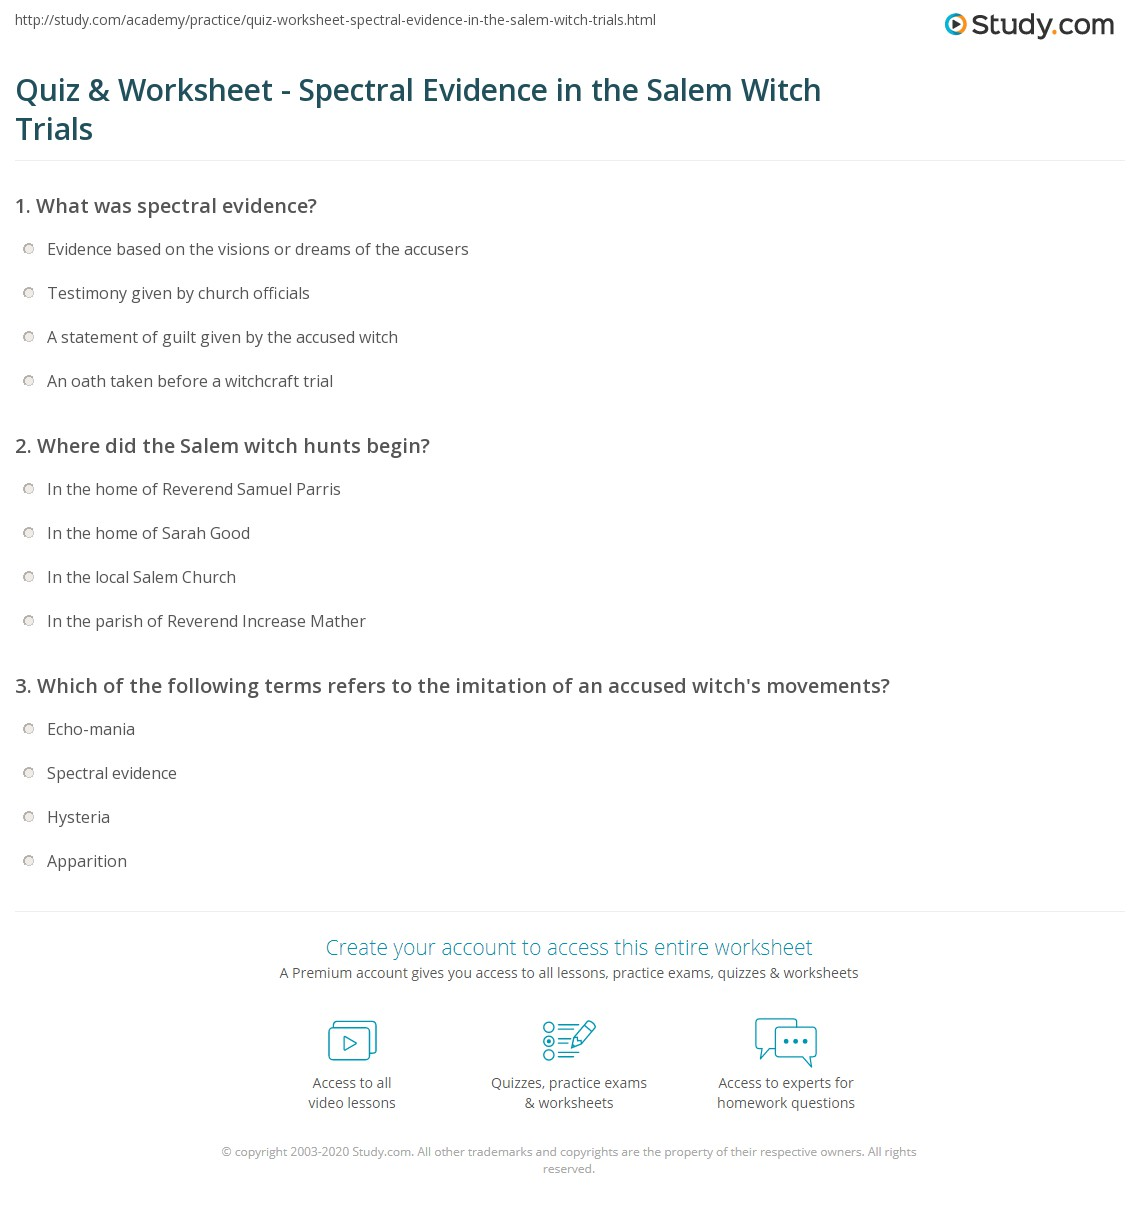 quiz worksheet spectral evidence in the salem witch trials. Black Bedroom Furniture Sets. Home Design Ideas